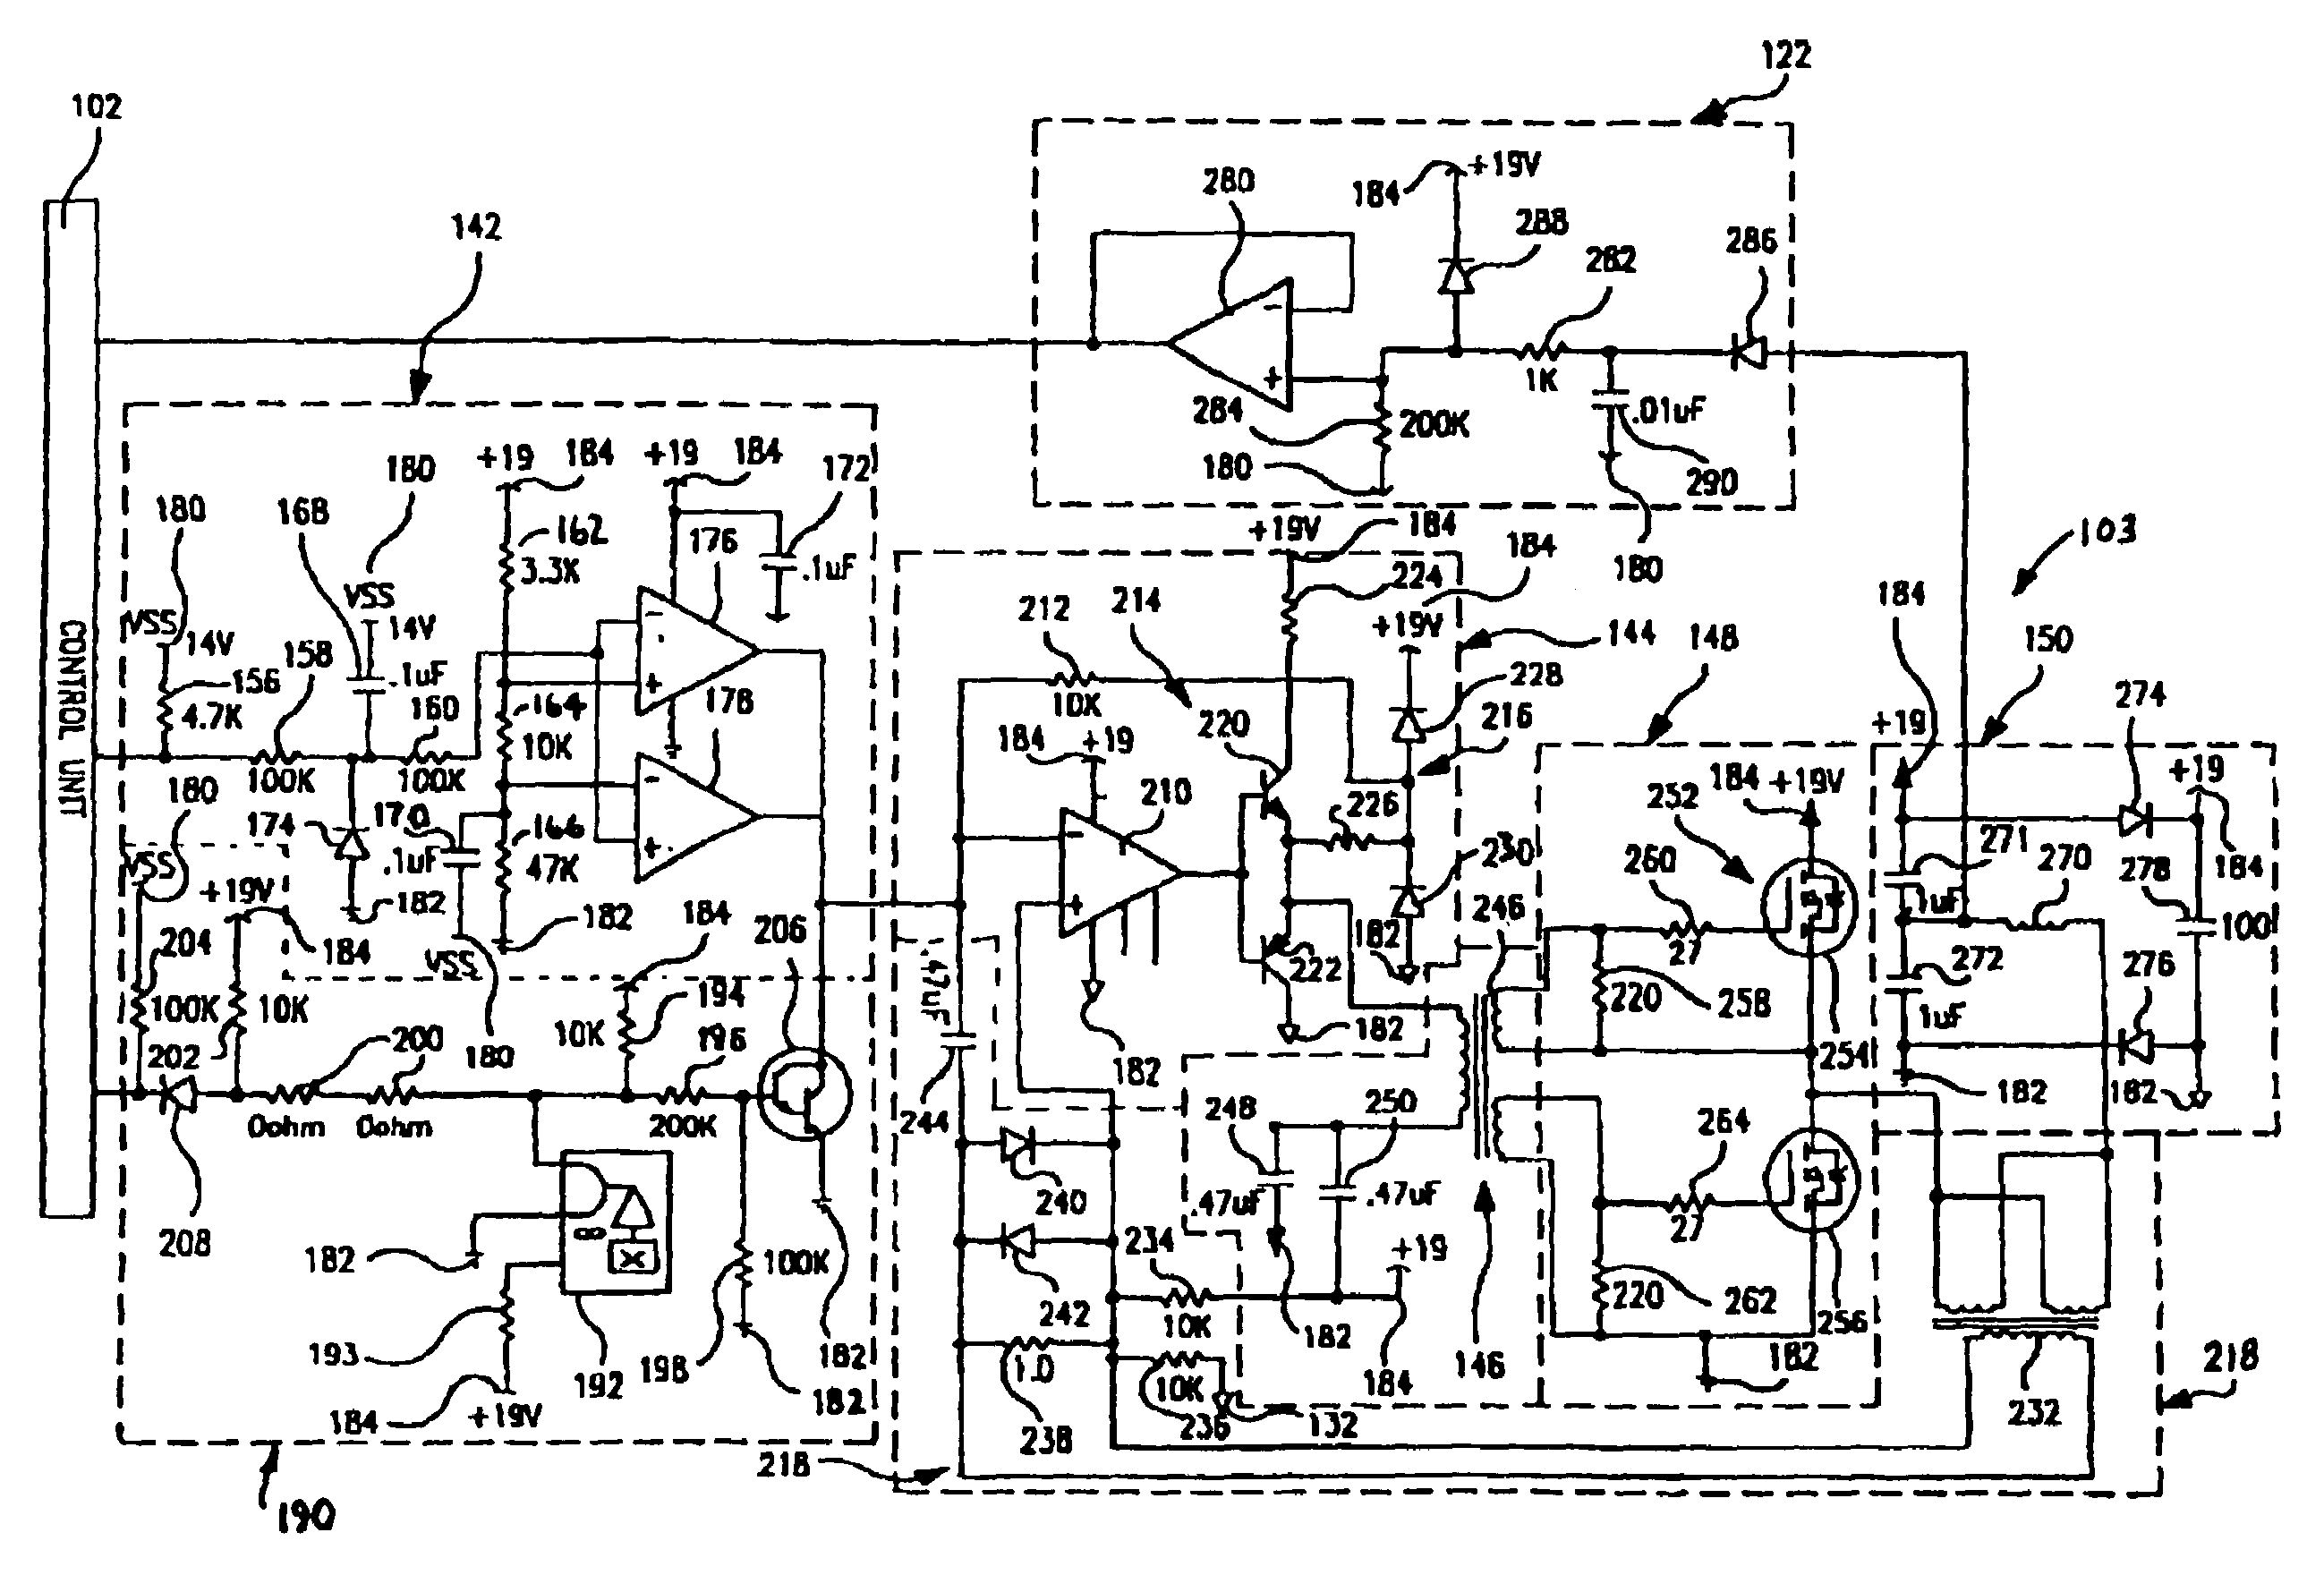 Analytics For Us Patent No 7180248 Inductively Coupled Ballast Circuit Current Limit The Disables When In Exceeds A Predetermined Threshold Or Falls Outside